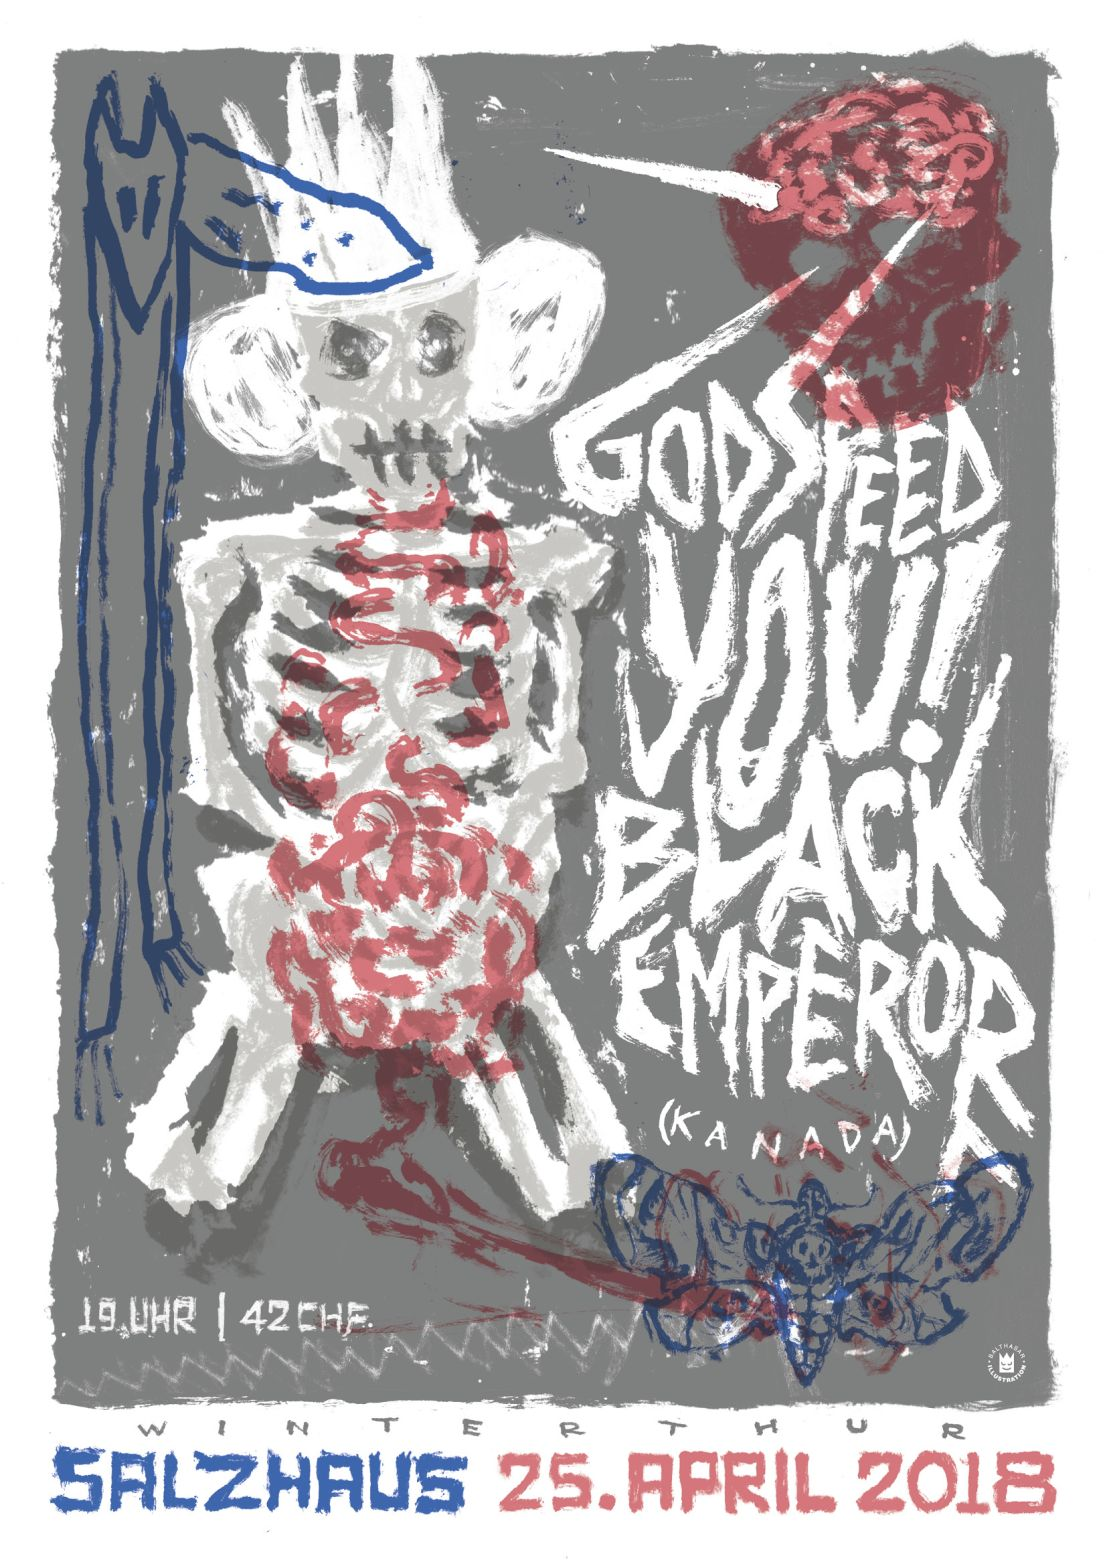 GODSPEED! YOU BLACK EMPEROR